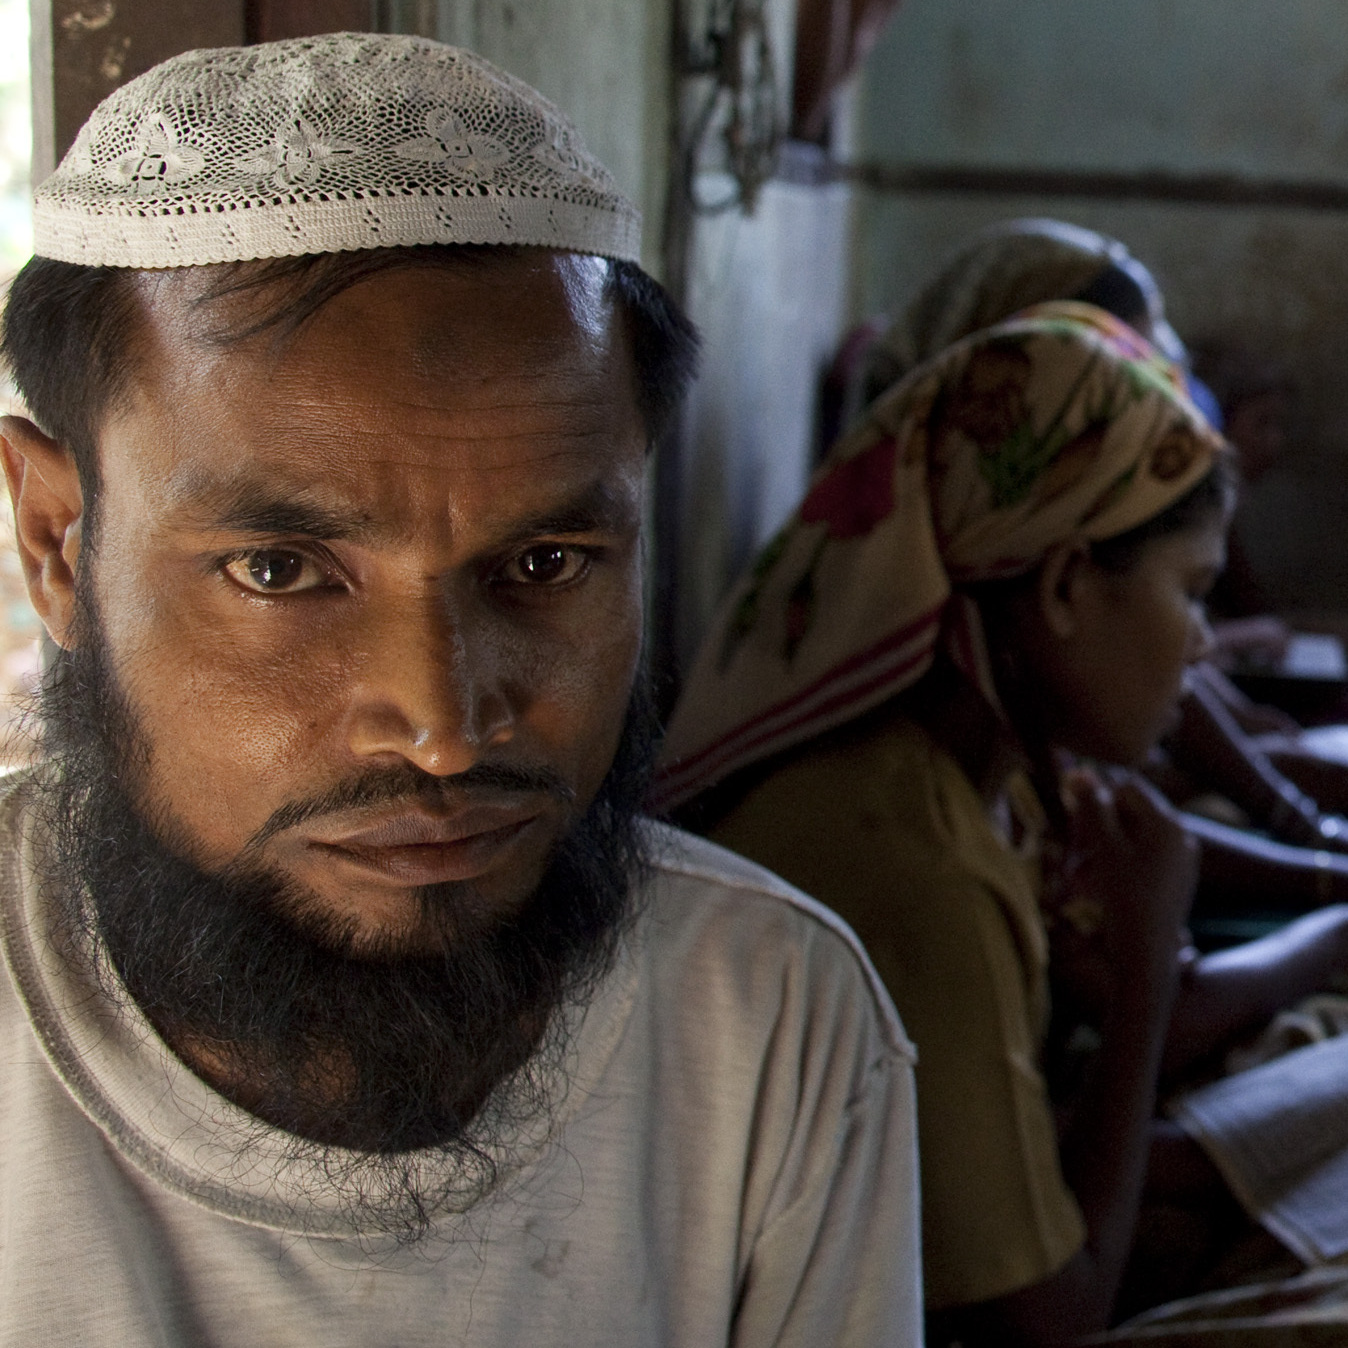 Burmese Rohingya madrassa students read the Quran during religious class on May 4, 2009, in Sittwe, Arakan state, Myanmar.